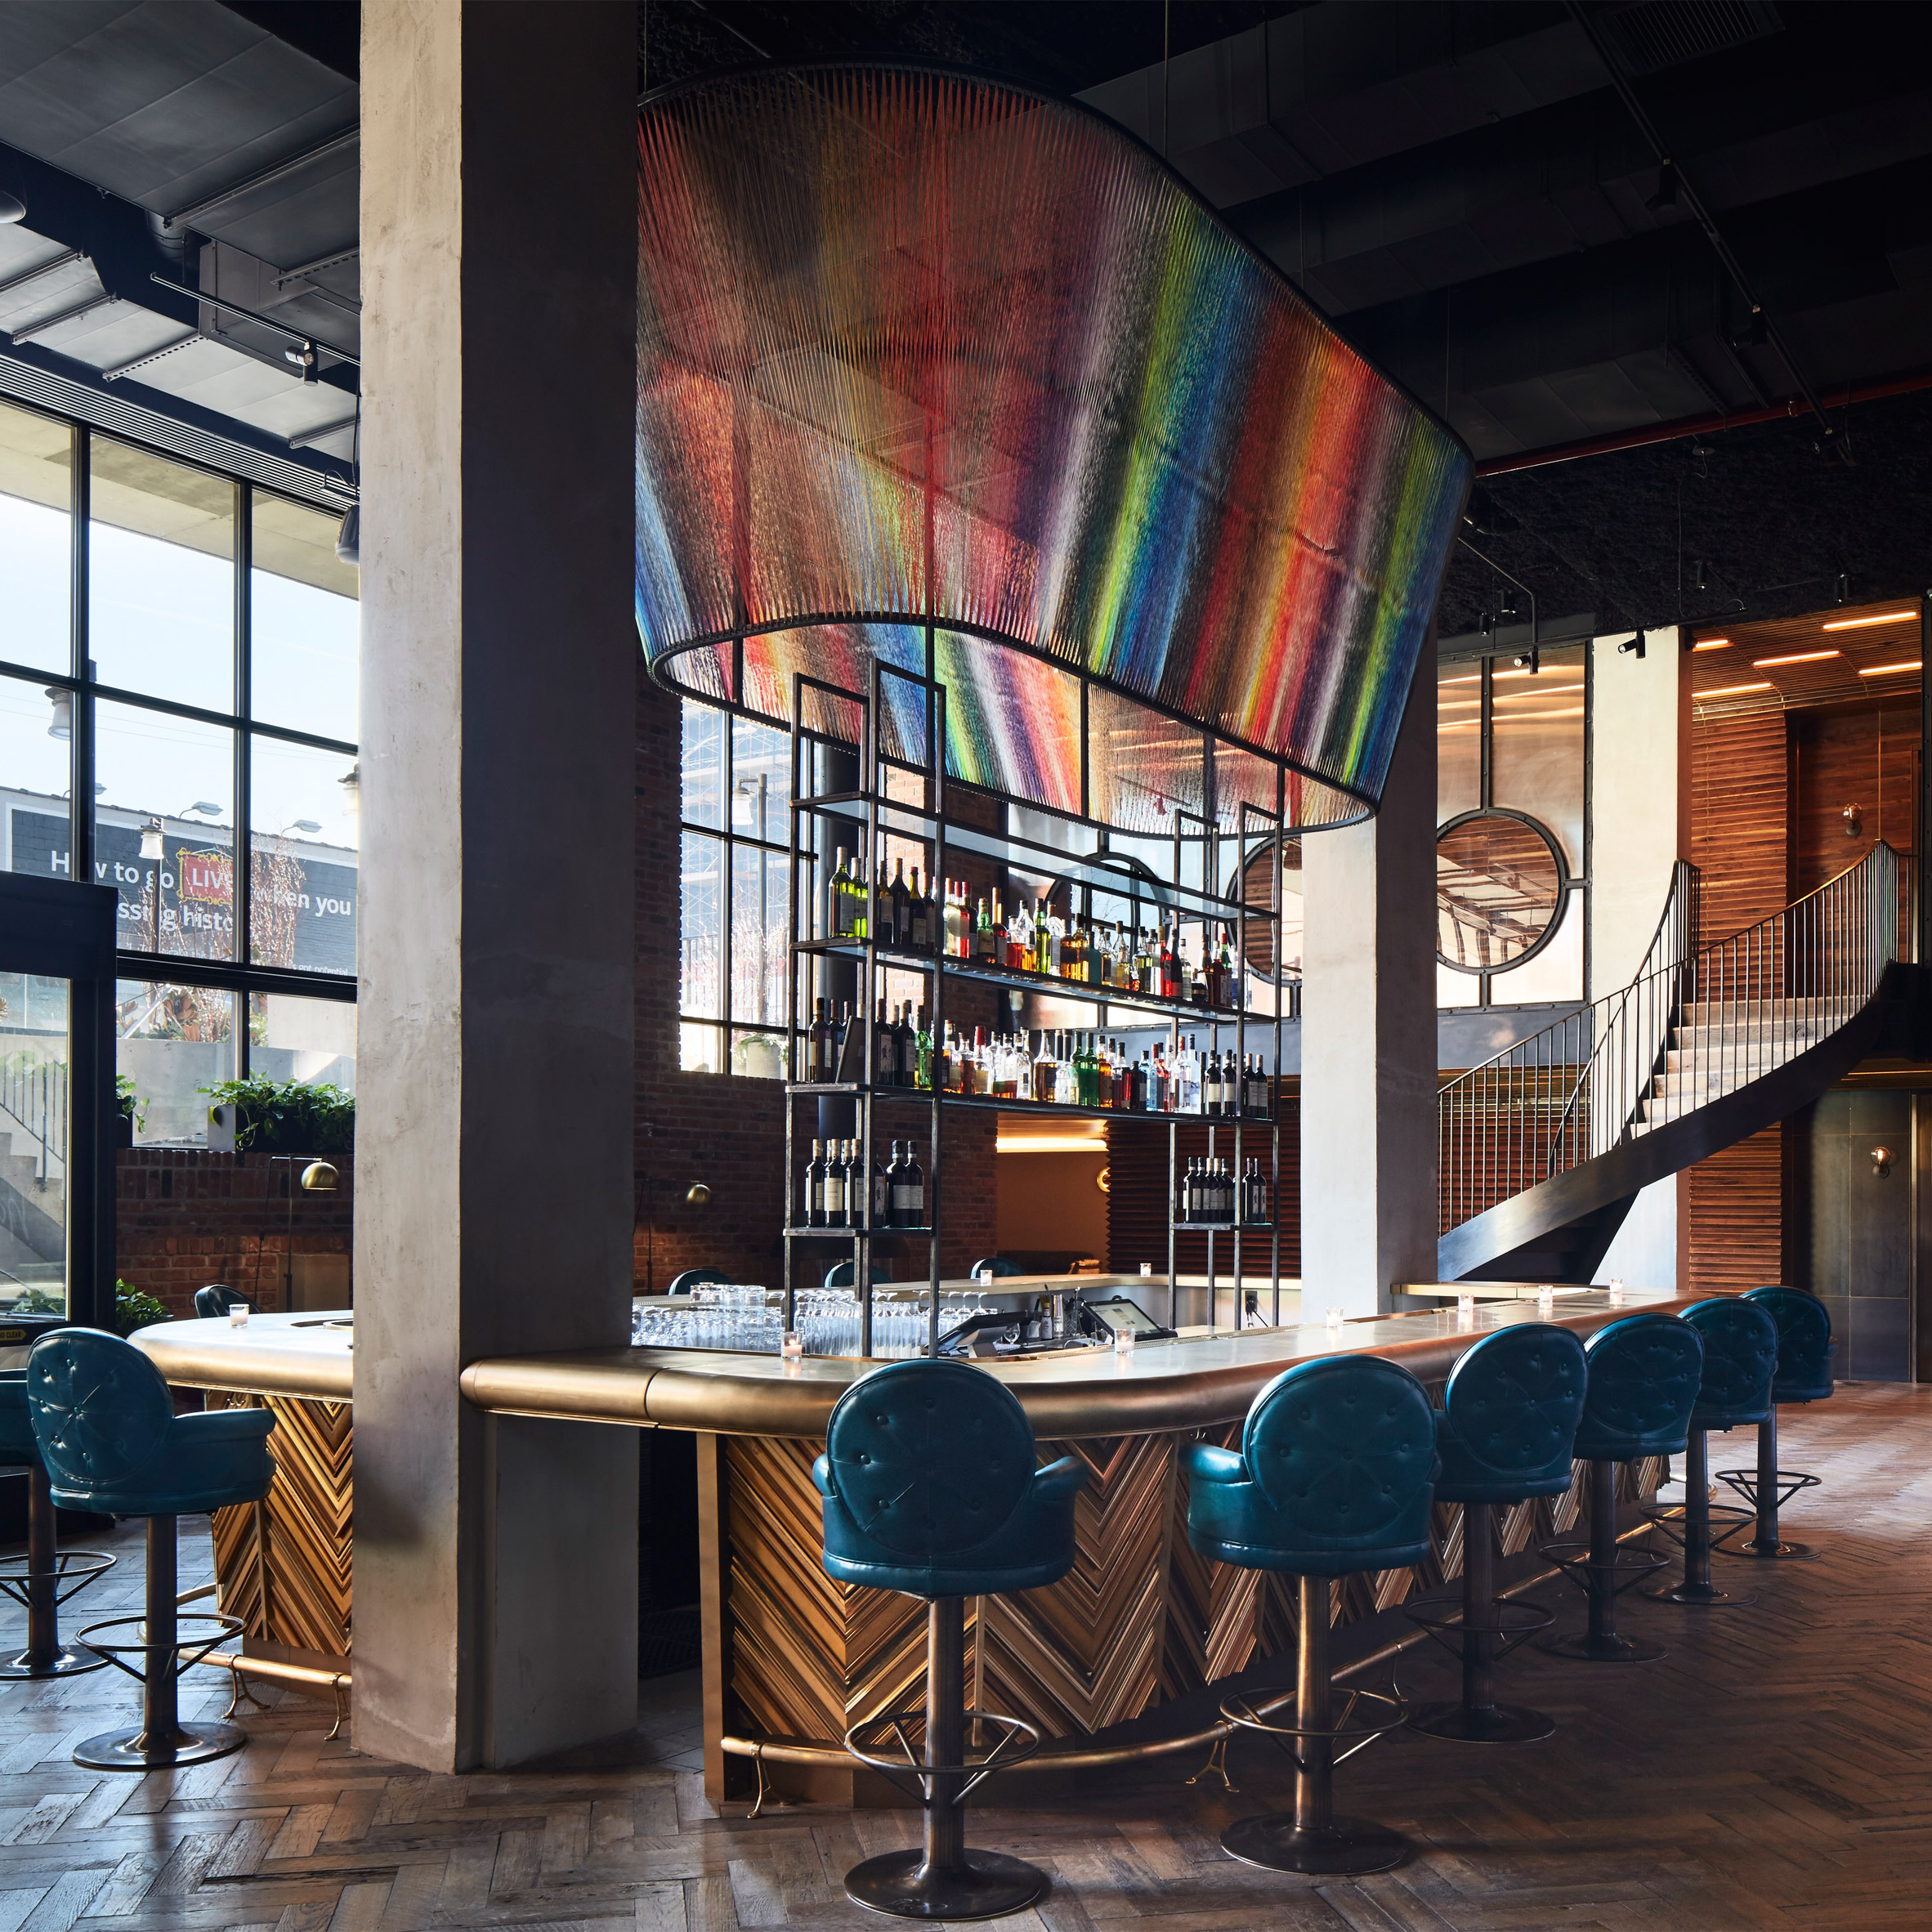 ace hotel shoreditchuniversal design studio